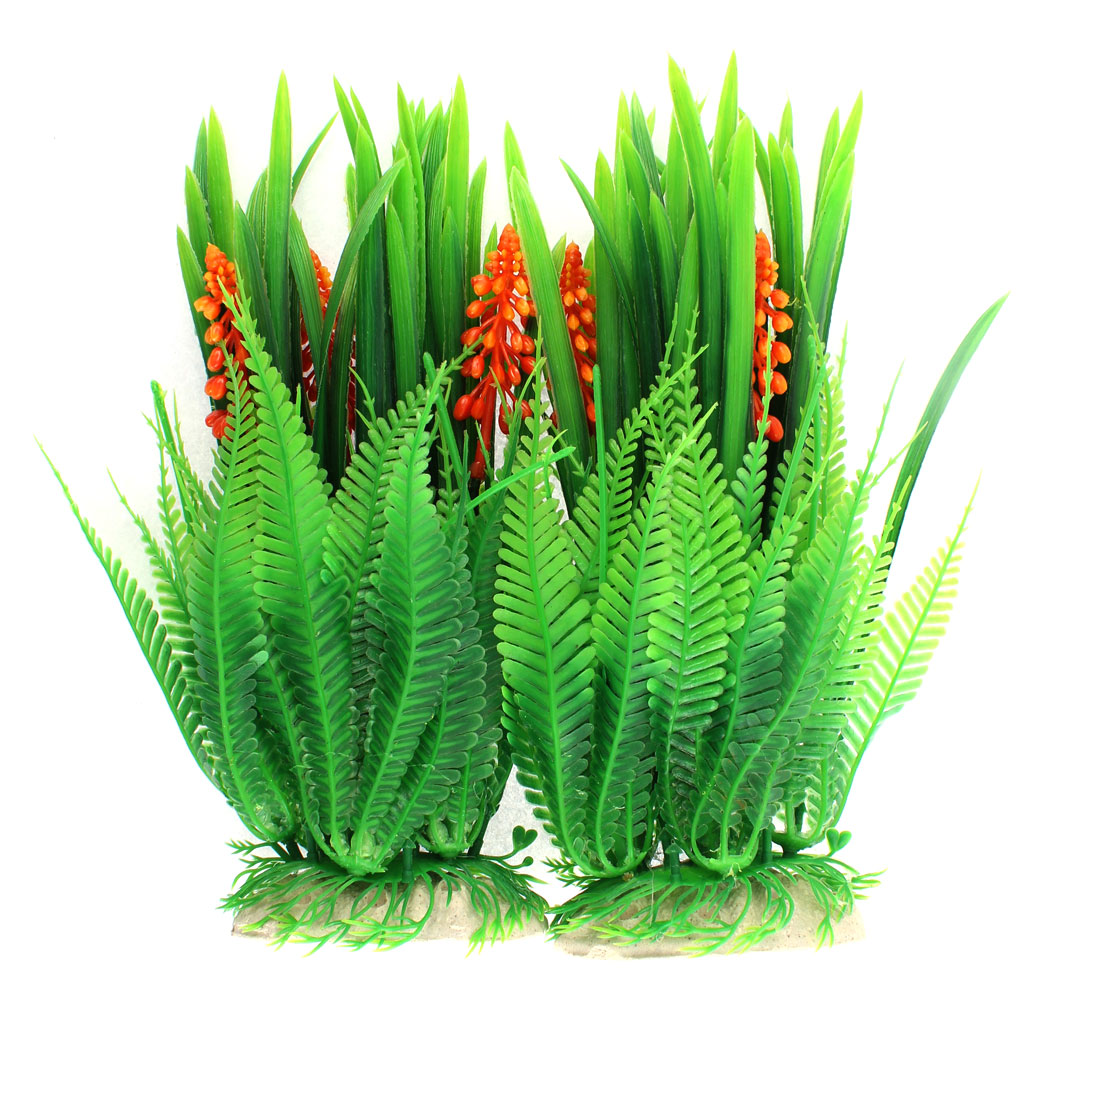 Fish Tank Aquarium Plastic Emulational Water Plant Grass Ornament 24cm Height 2pcs